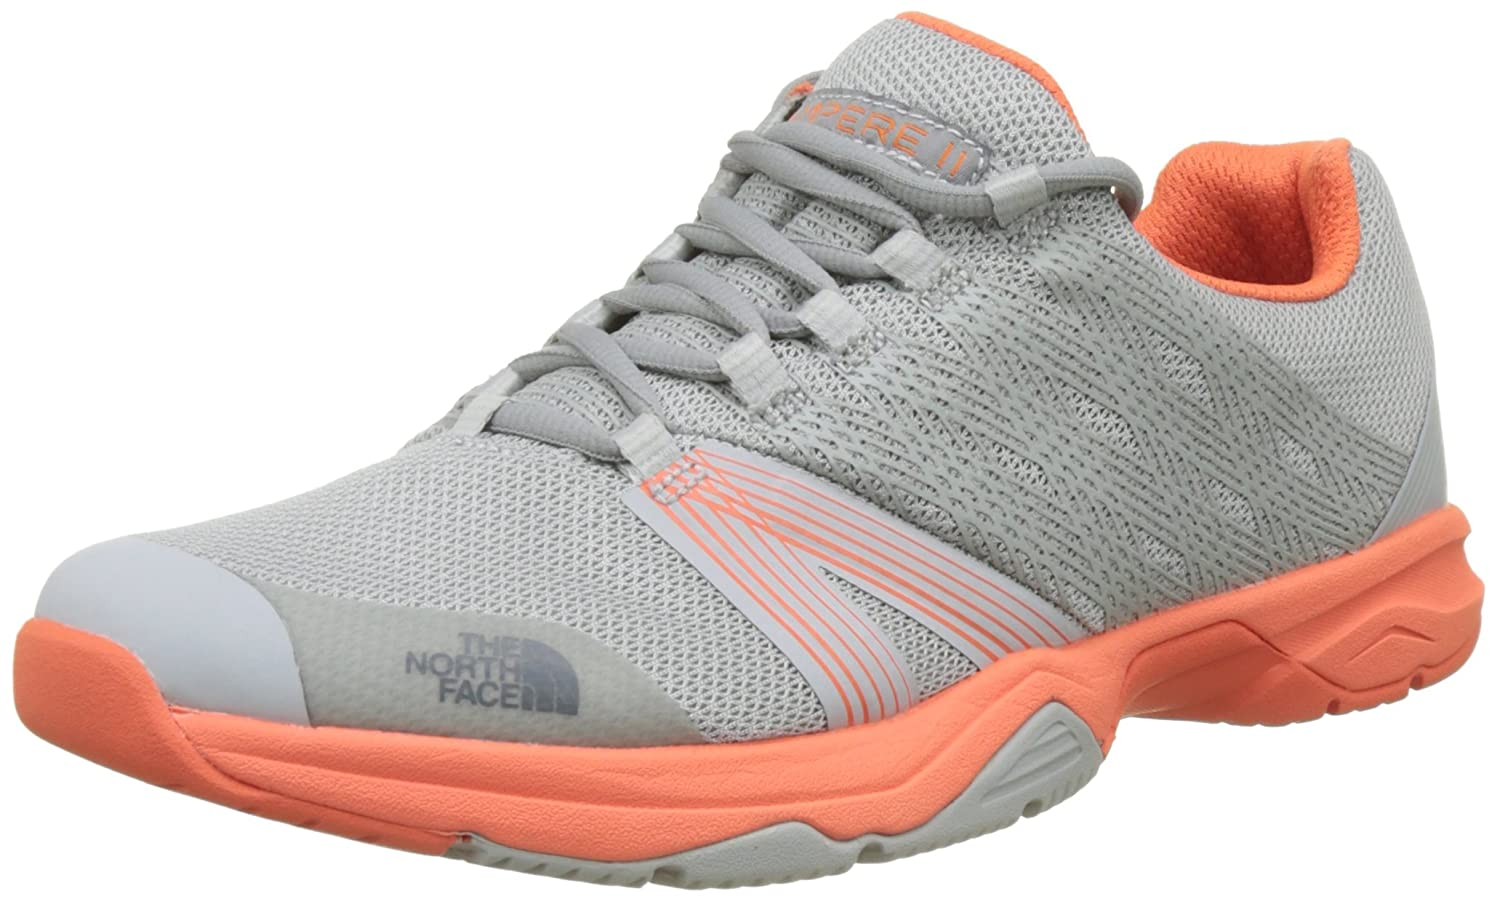 TALLA 40 EU. The North Face Litewave Ampere II, Zapatillas de Running para Mujer